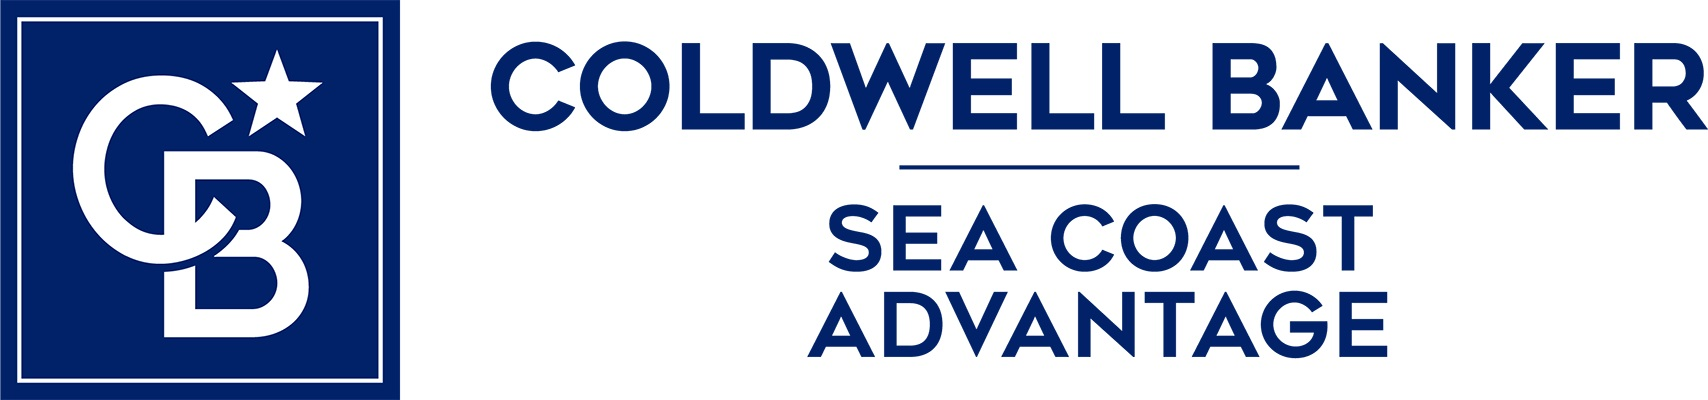 Penny Krueger - Coldwell Banker Sea Coast Advantage Realty Logo